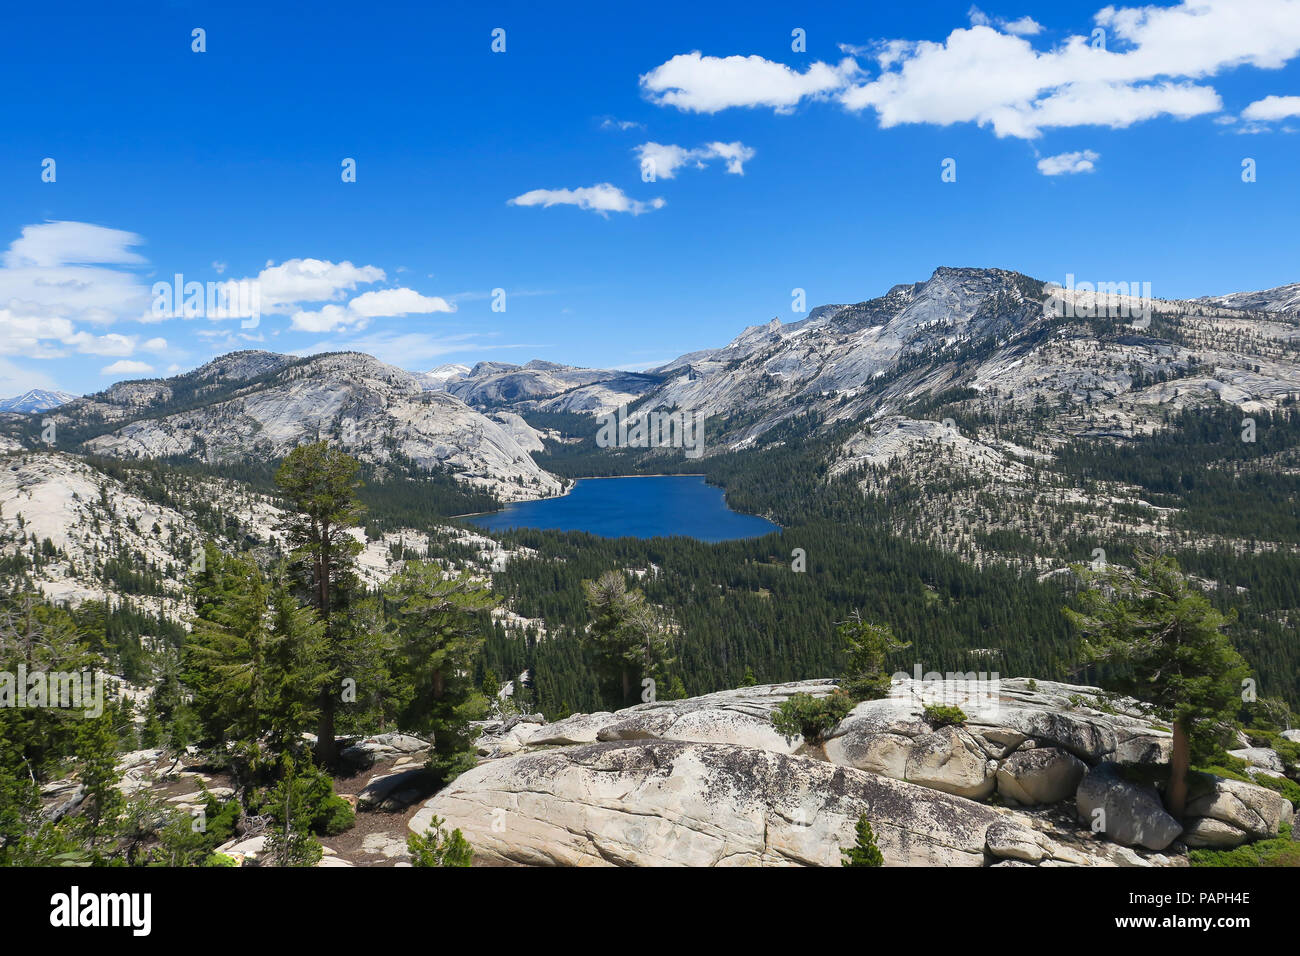 Tenaya Lake and Alpine Landscape, from above at Olmsted Point - Yosemite National Park Stock Photo